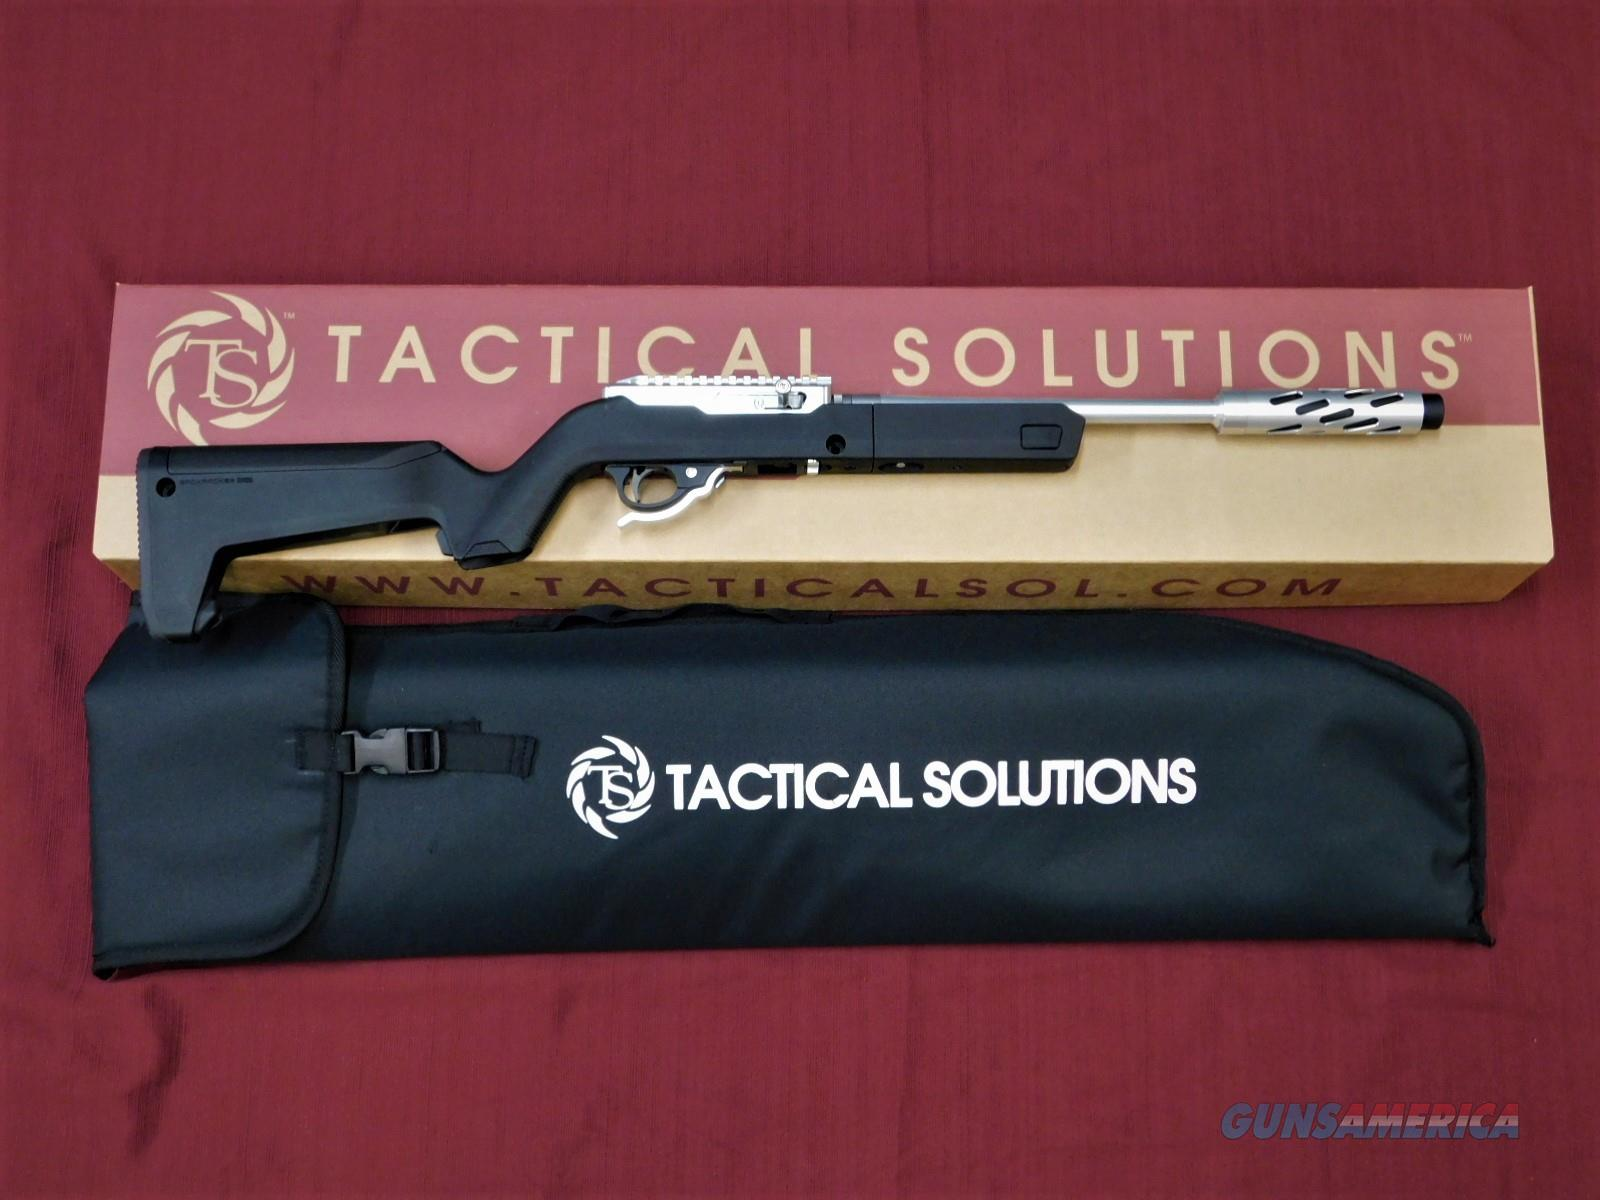 TACTICAL SOLUTIONS X-RING TD SBX MAGPUL BACKPACKER SILVER / BLACK .22 LR  Guns > Rifles > Ruger Rifles > 10-22